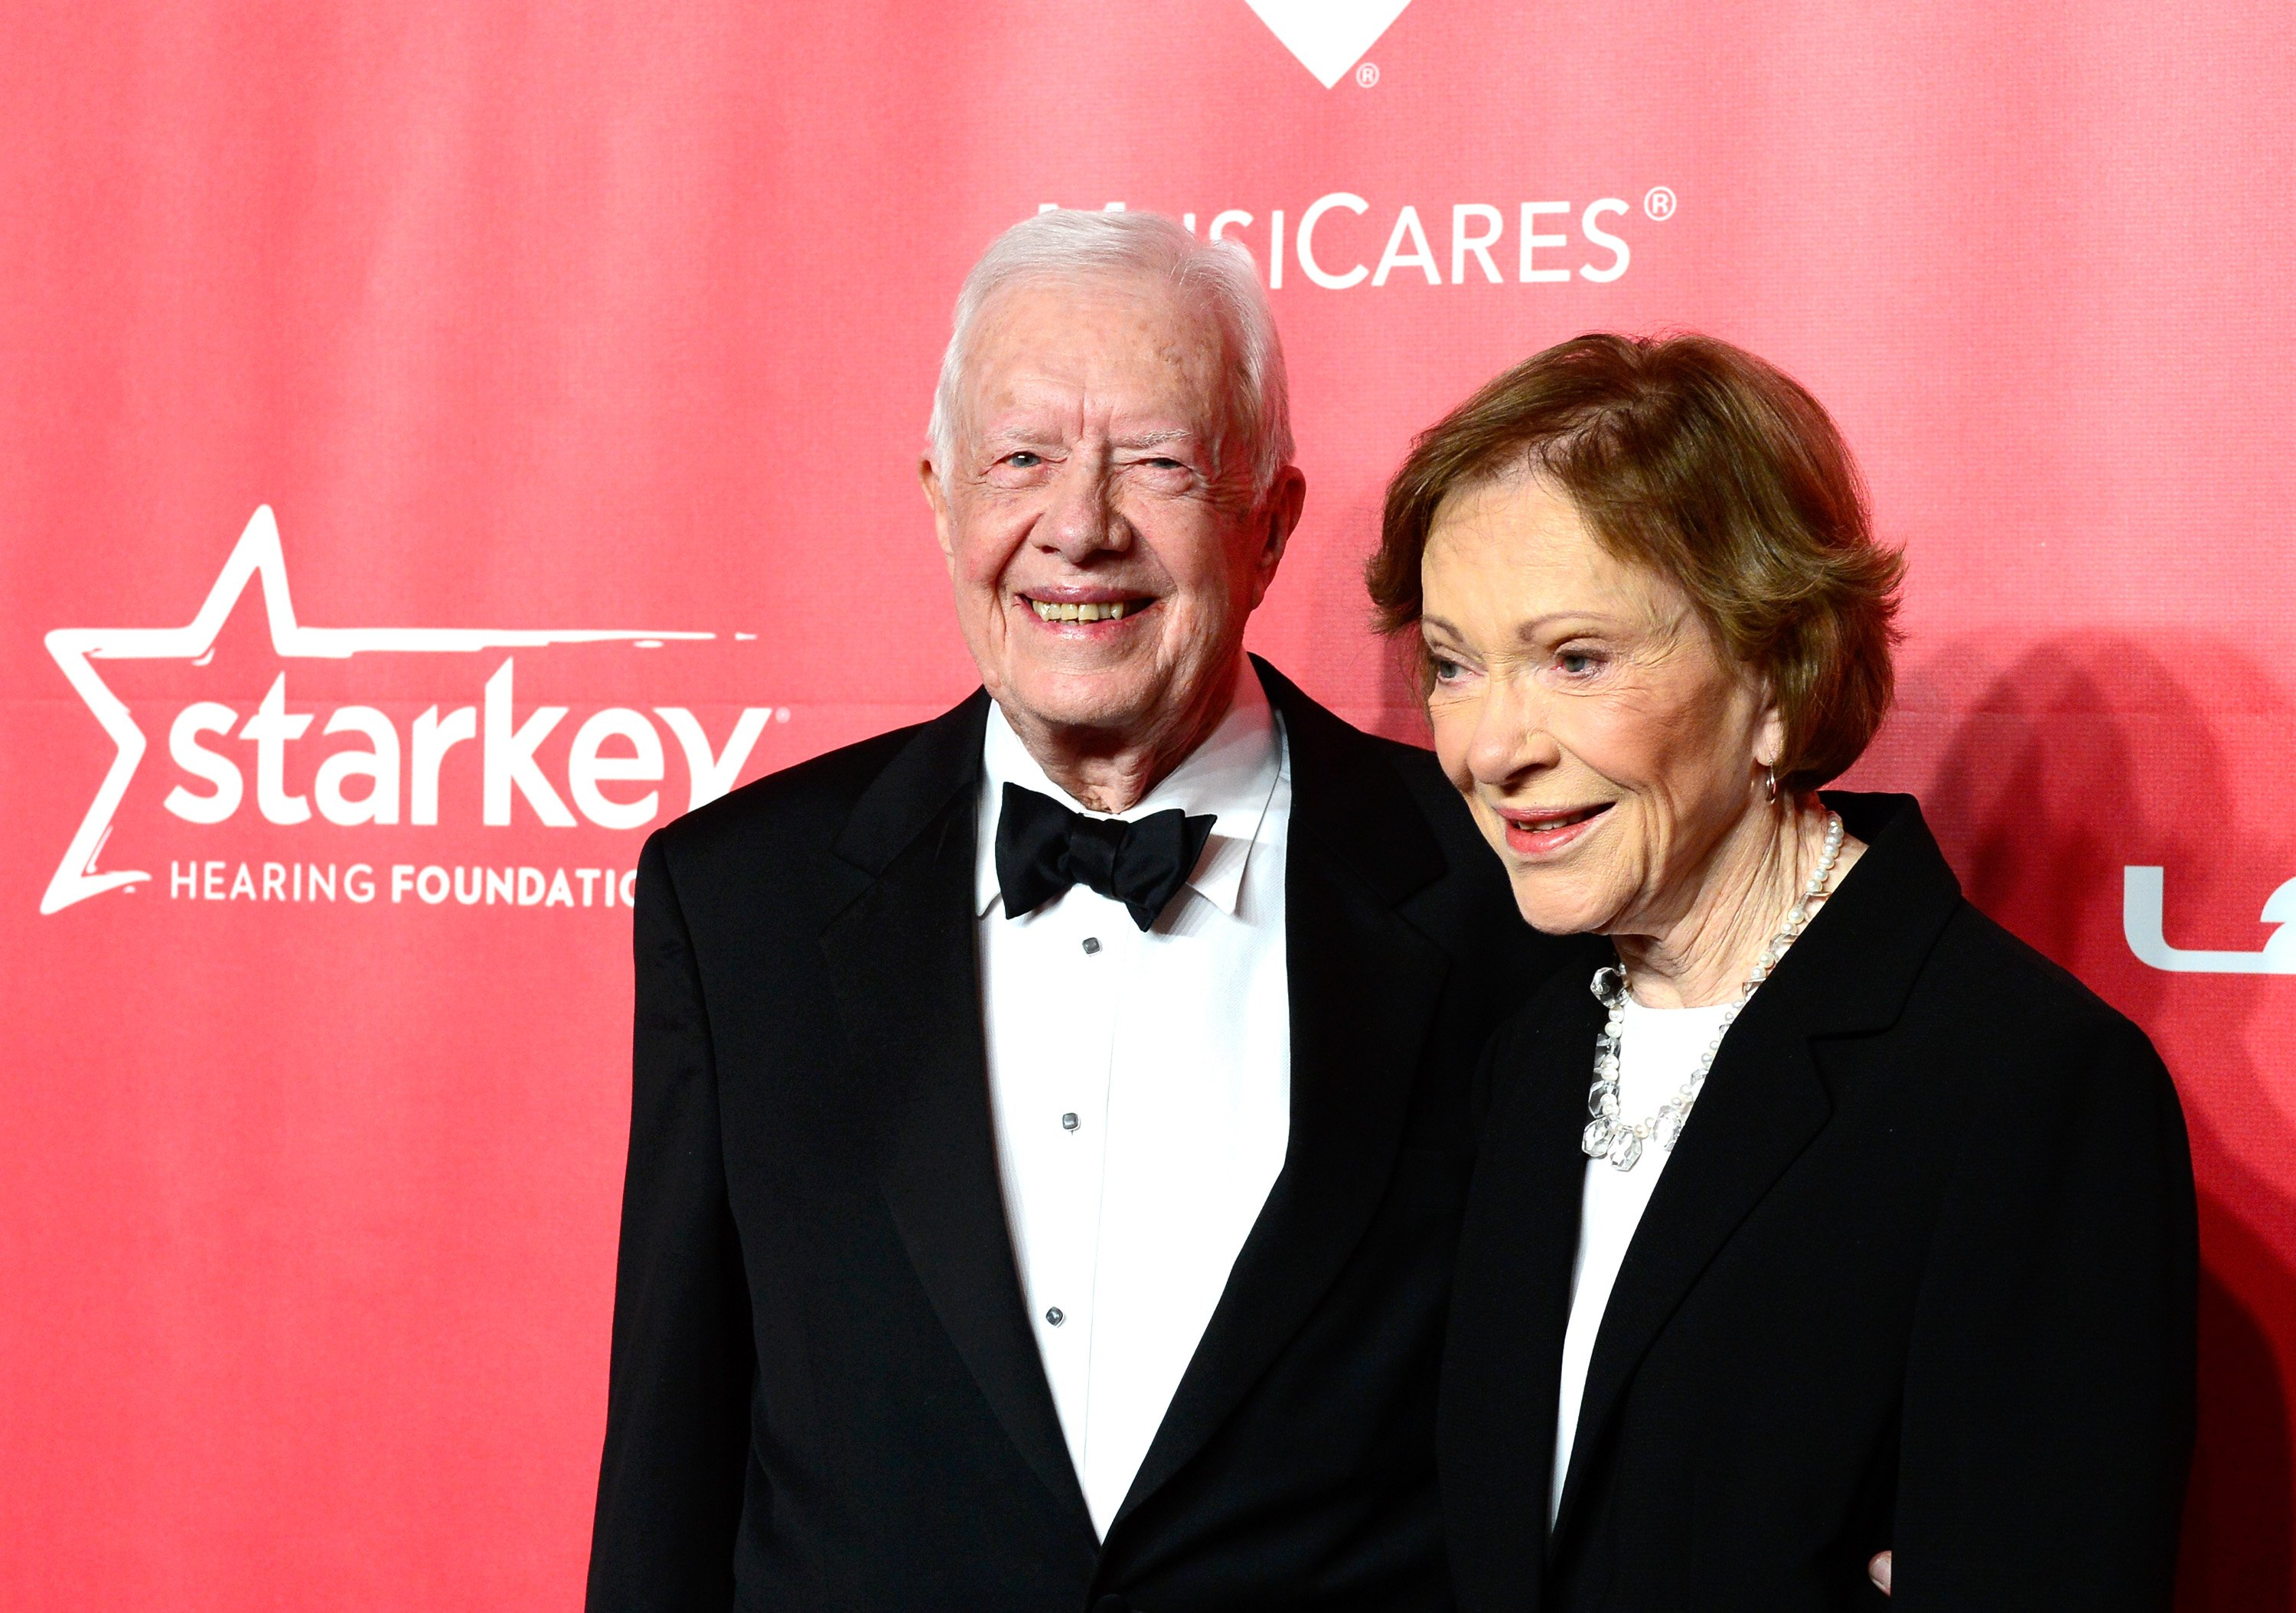 L'ancien président américain Jimmy Carter et l'ancienne Première Dame Rosalynn Carter à l'occasion du 25ème anniversaire du Gala de la Personnalité de l'année MusiCares honorant Bob Dylan au Los Angeles Convention Center, le 6 février 2015 en Californie | Photo : Getty Images